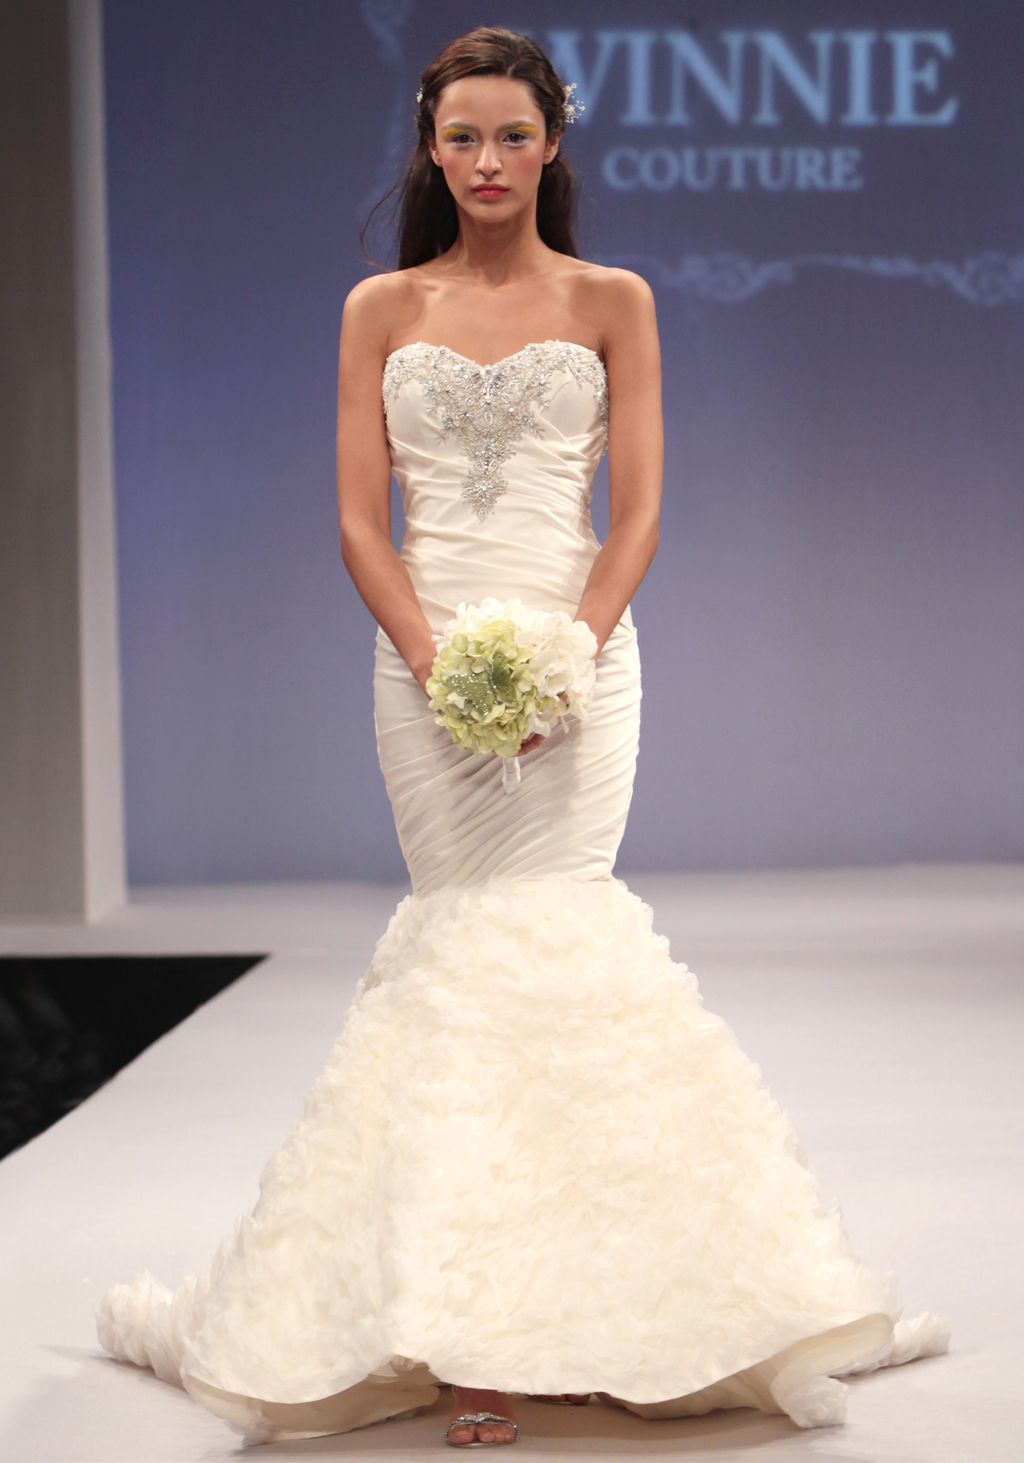 Winnie Couture Bridal Gown Spring 2013 Wedding Dress CRENCENTIA